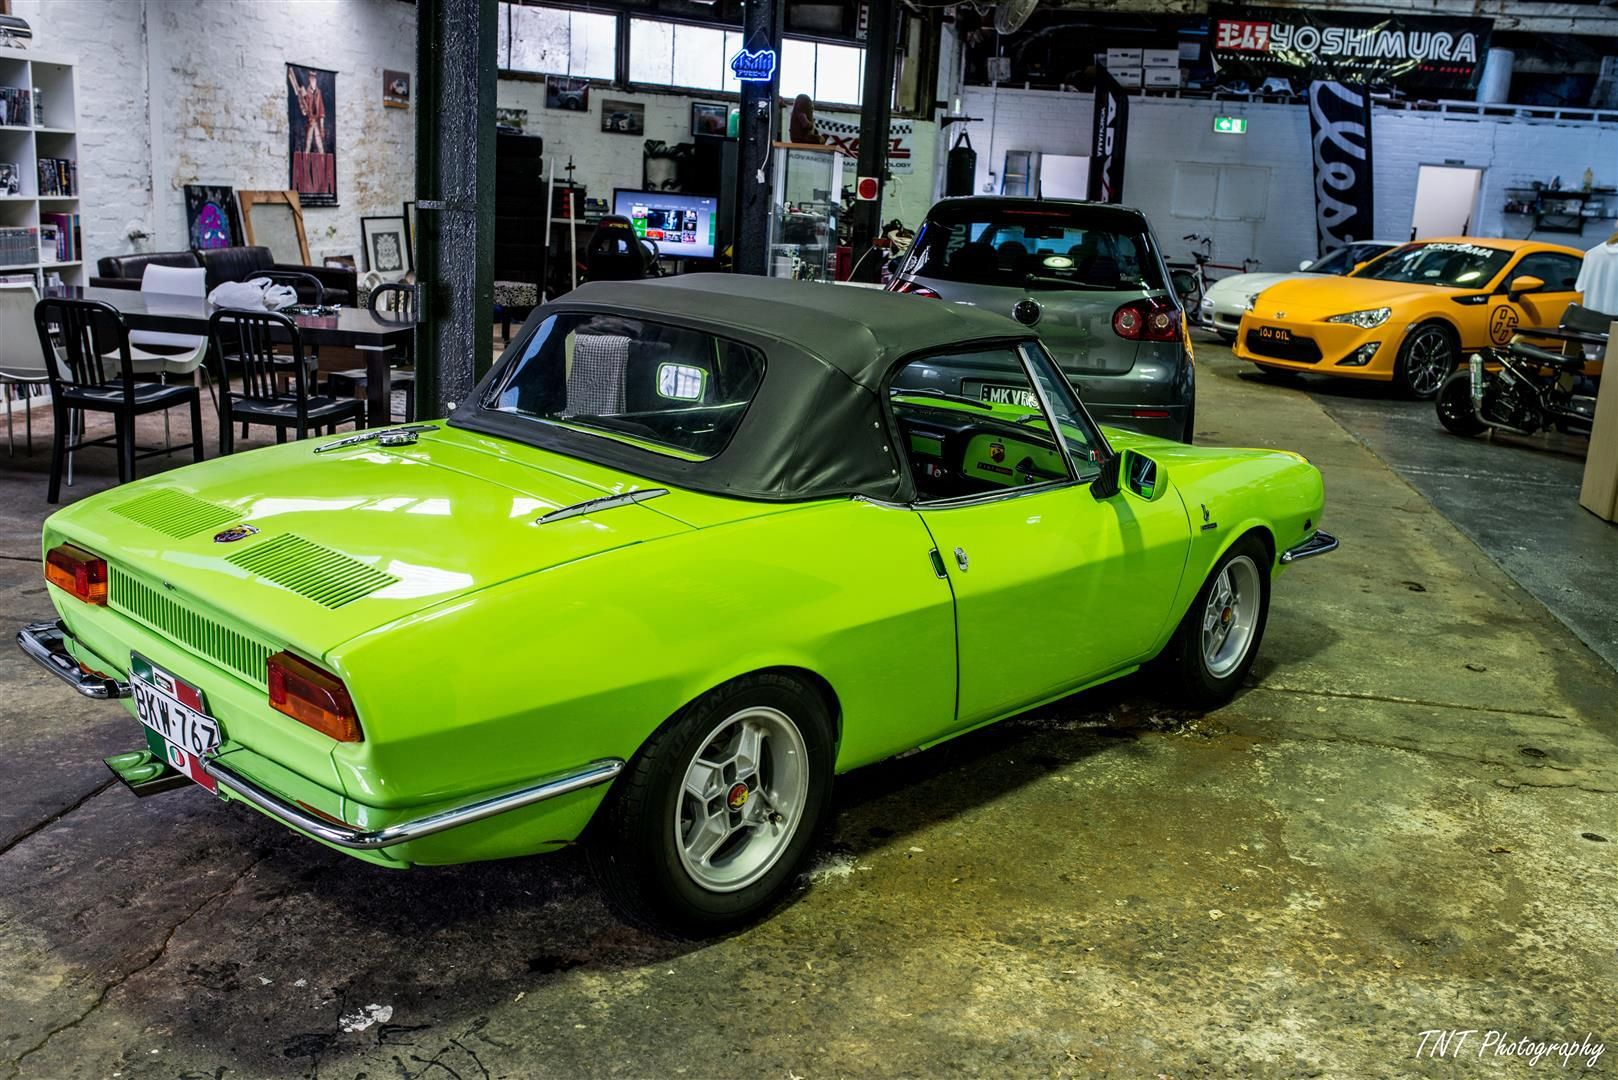 Fiat 850 Spider Abarth Google Search Fiat 850 Fiat Fiat Spider